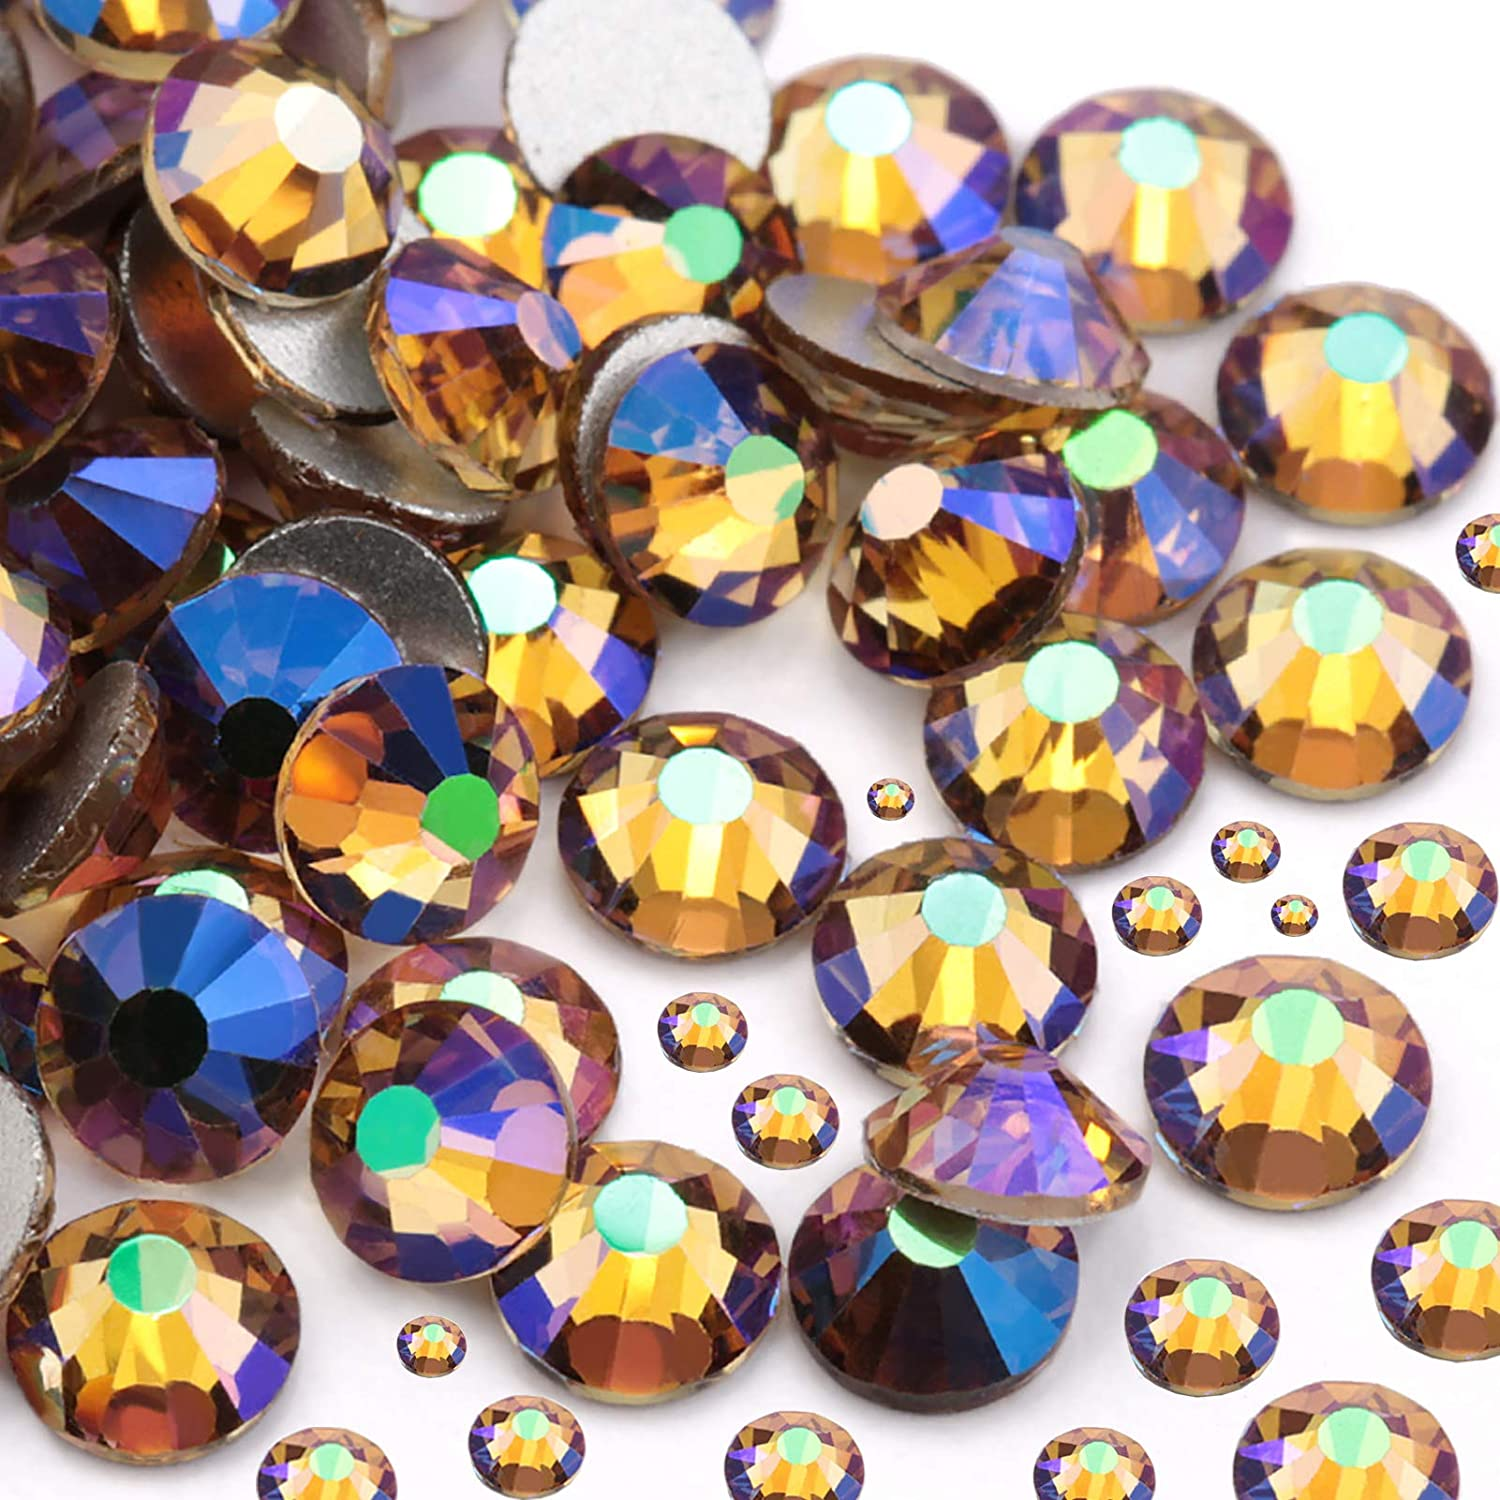 Dowarm 2650 Pieces Glass Flat Crystal Back Rhinestones Round Super popular specialty store Purchase Gem